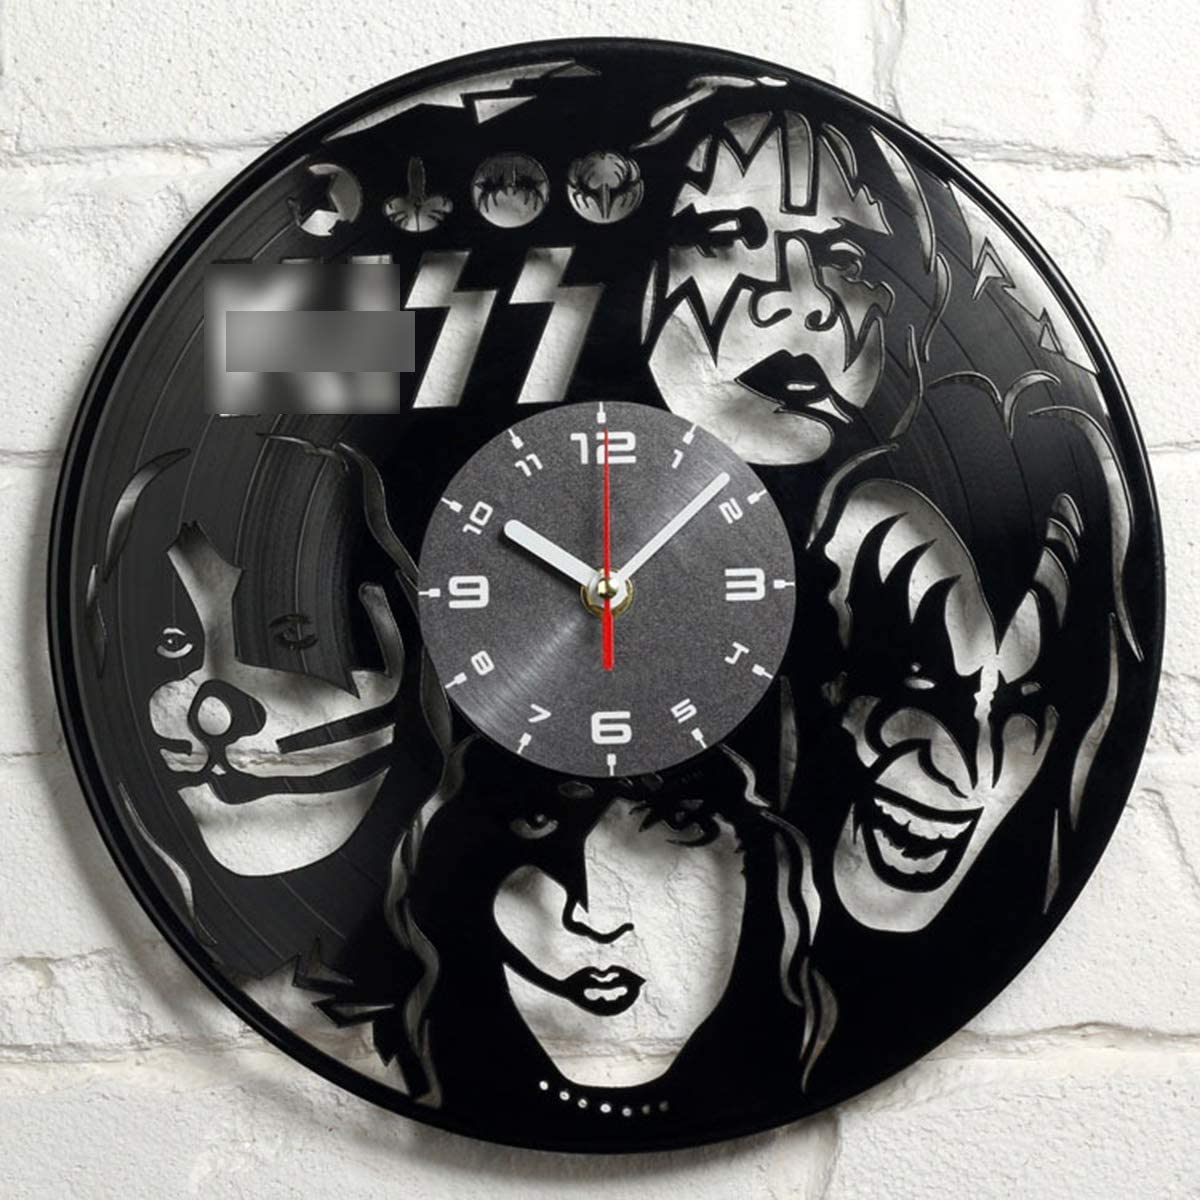 """JX-PEP 12"""" Vinyl Wall Clock Compatible with Kiss Rock Band Themed Vintage Home,Gift Set Idea for Retro Rock Music Lovers, Men, Women, Her, Him - Room Decorations Wall Art Decor"""